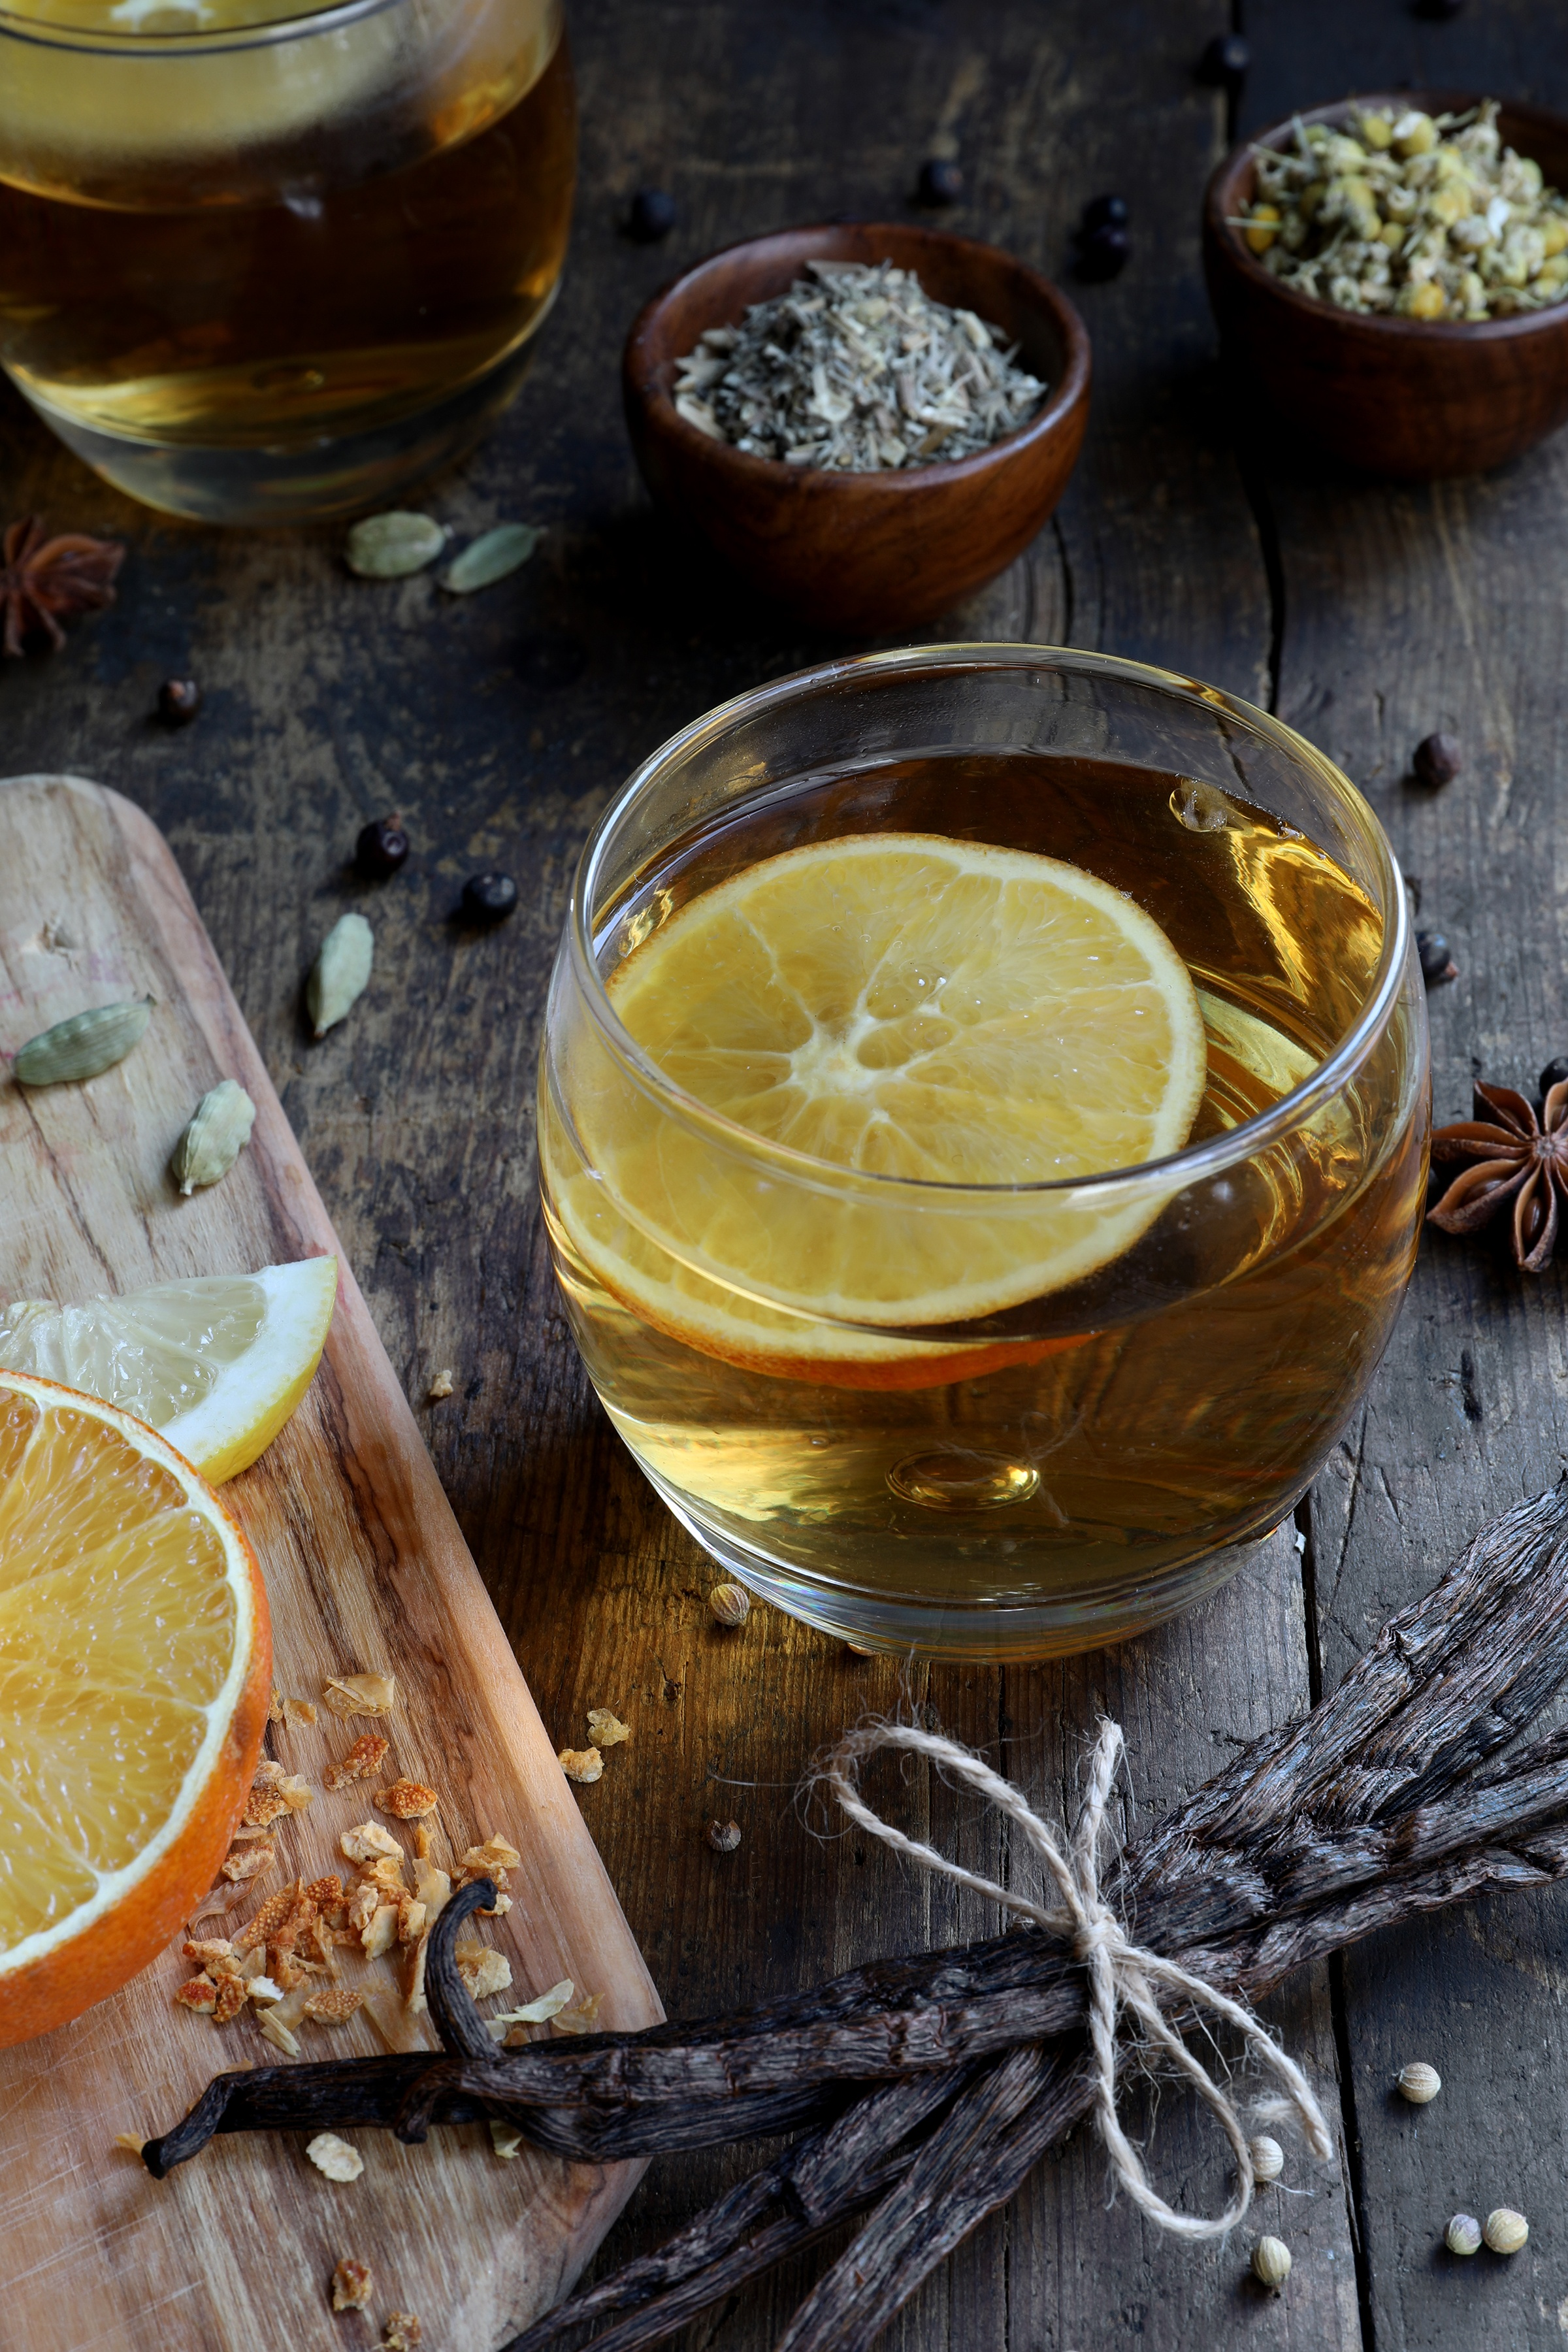 Light beverage with lemon slice in it displayed with vanilla beans, citrus and other spices.